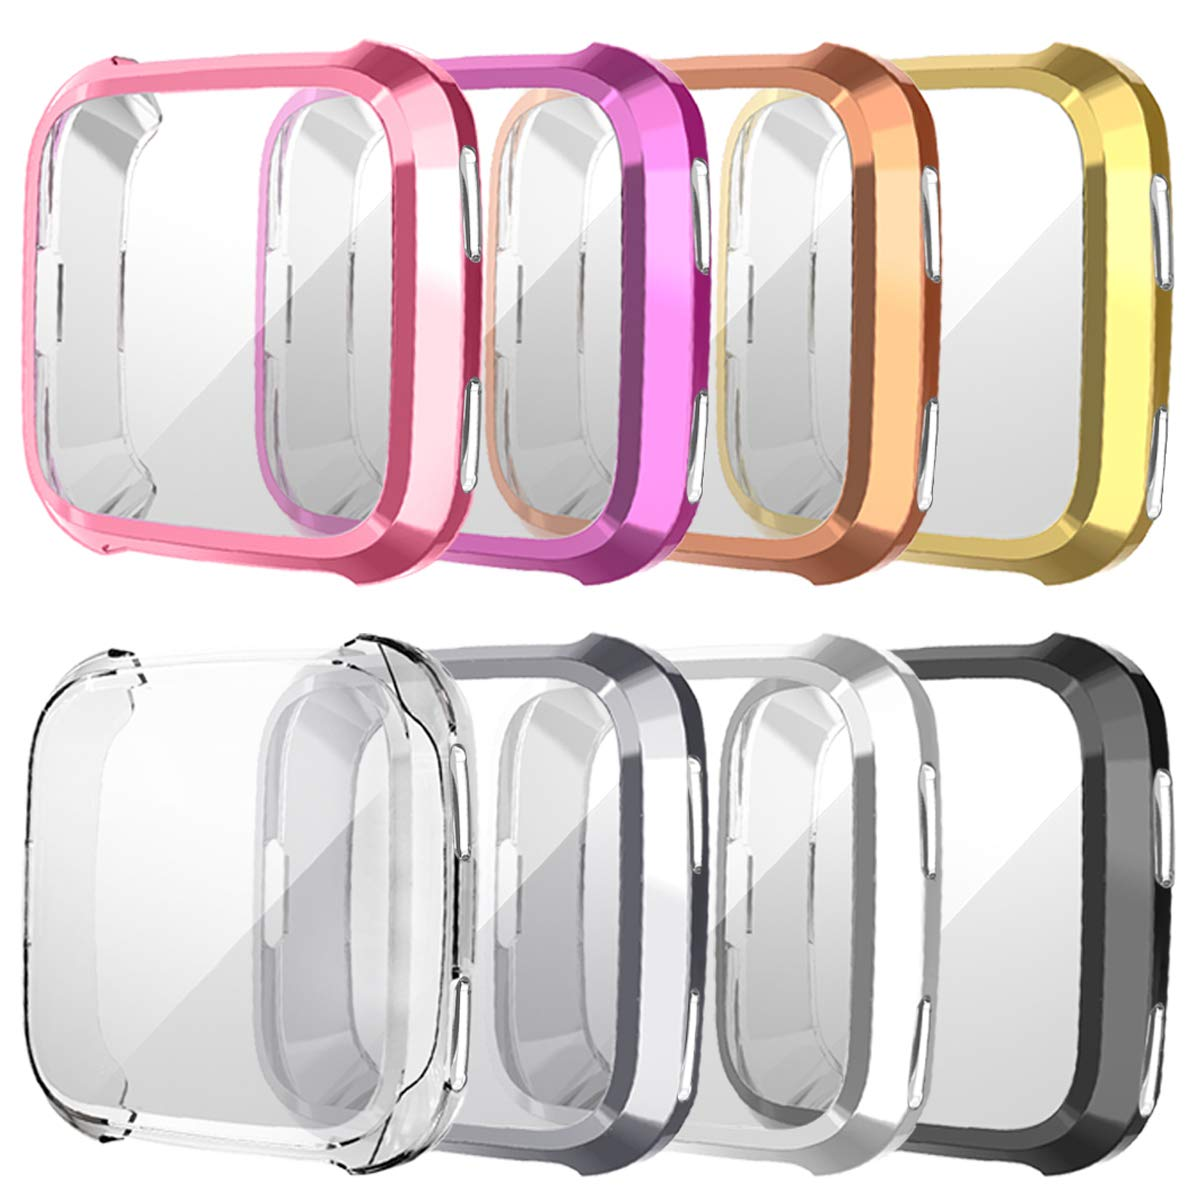 8 Pack Screen Protector Case for Fitbit Versa, Haojavo Soft TPU Slim Fit Full Cover Screen Protector for Fitbit Versa Smartwatch Bands Accessories by Haojavo